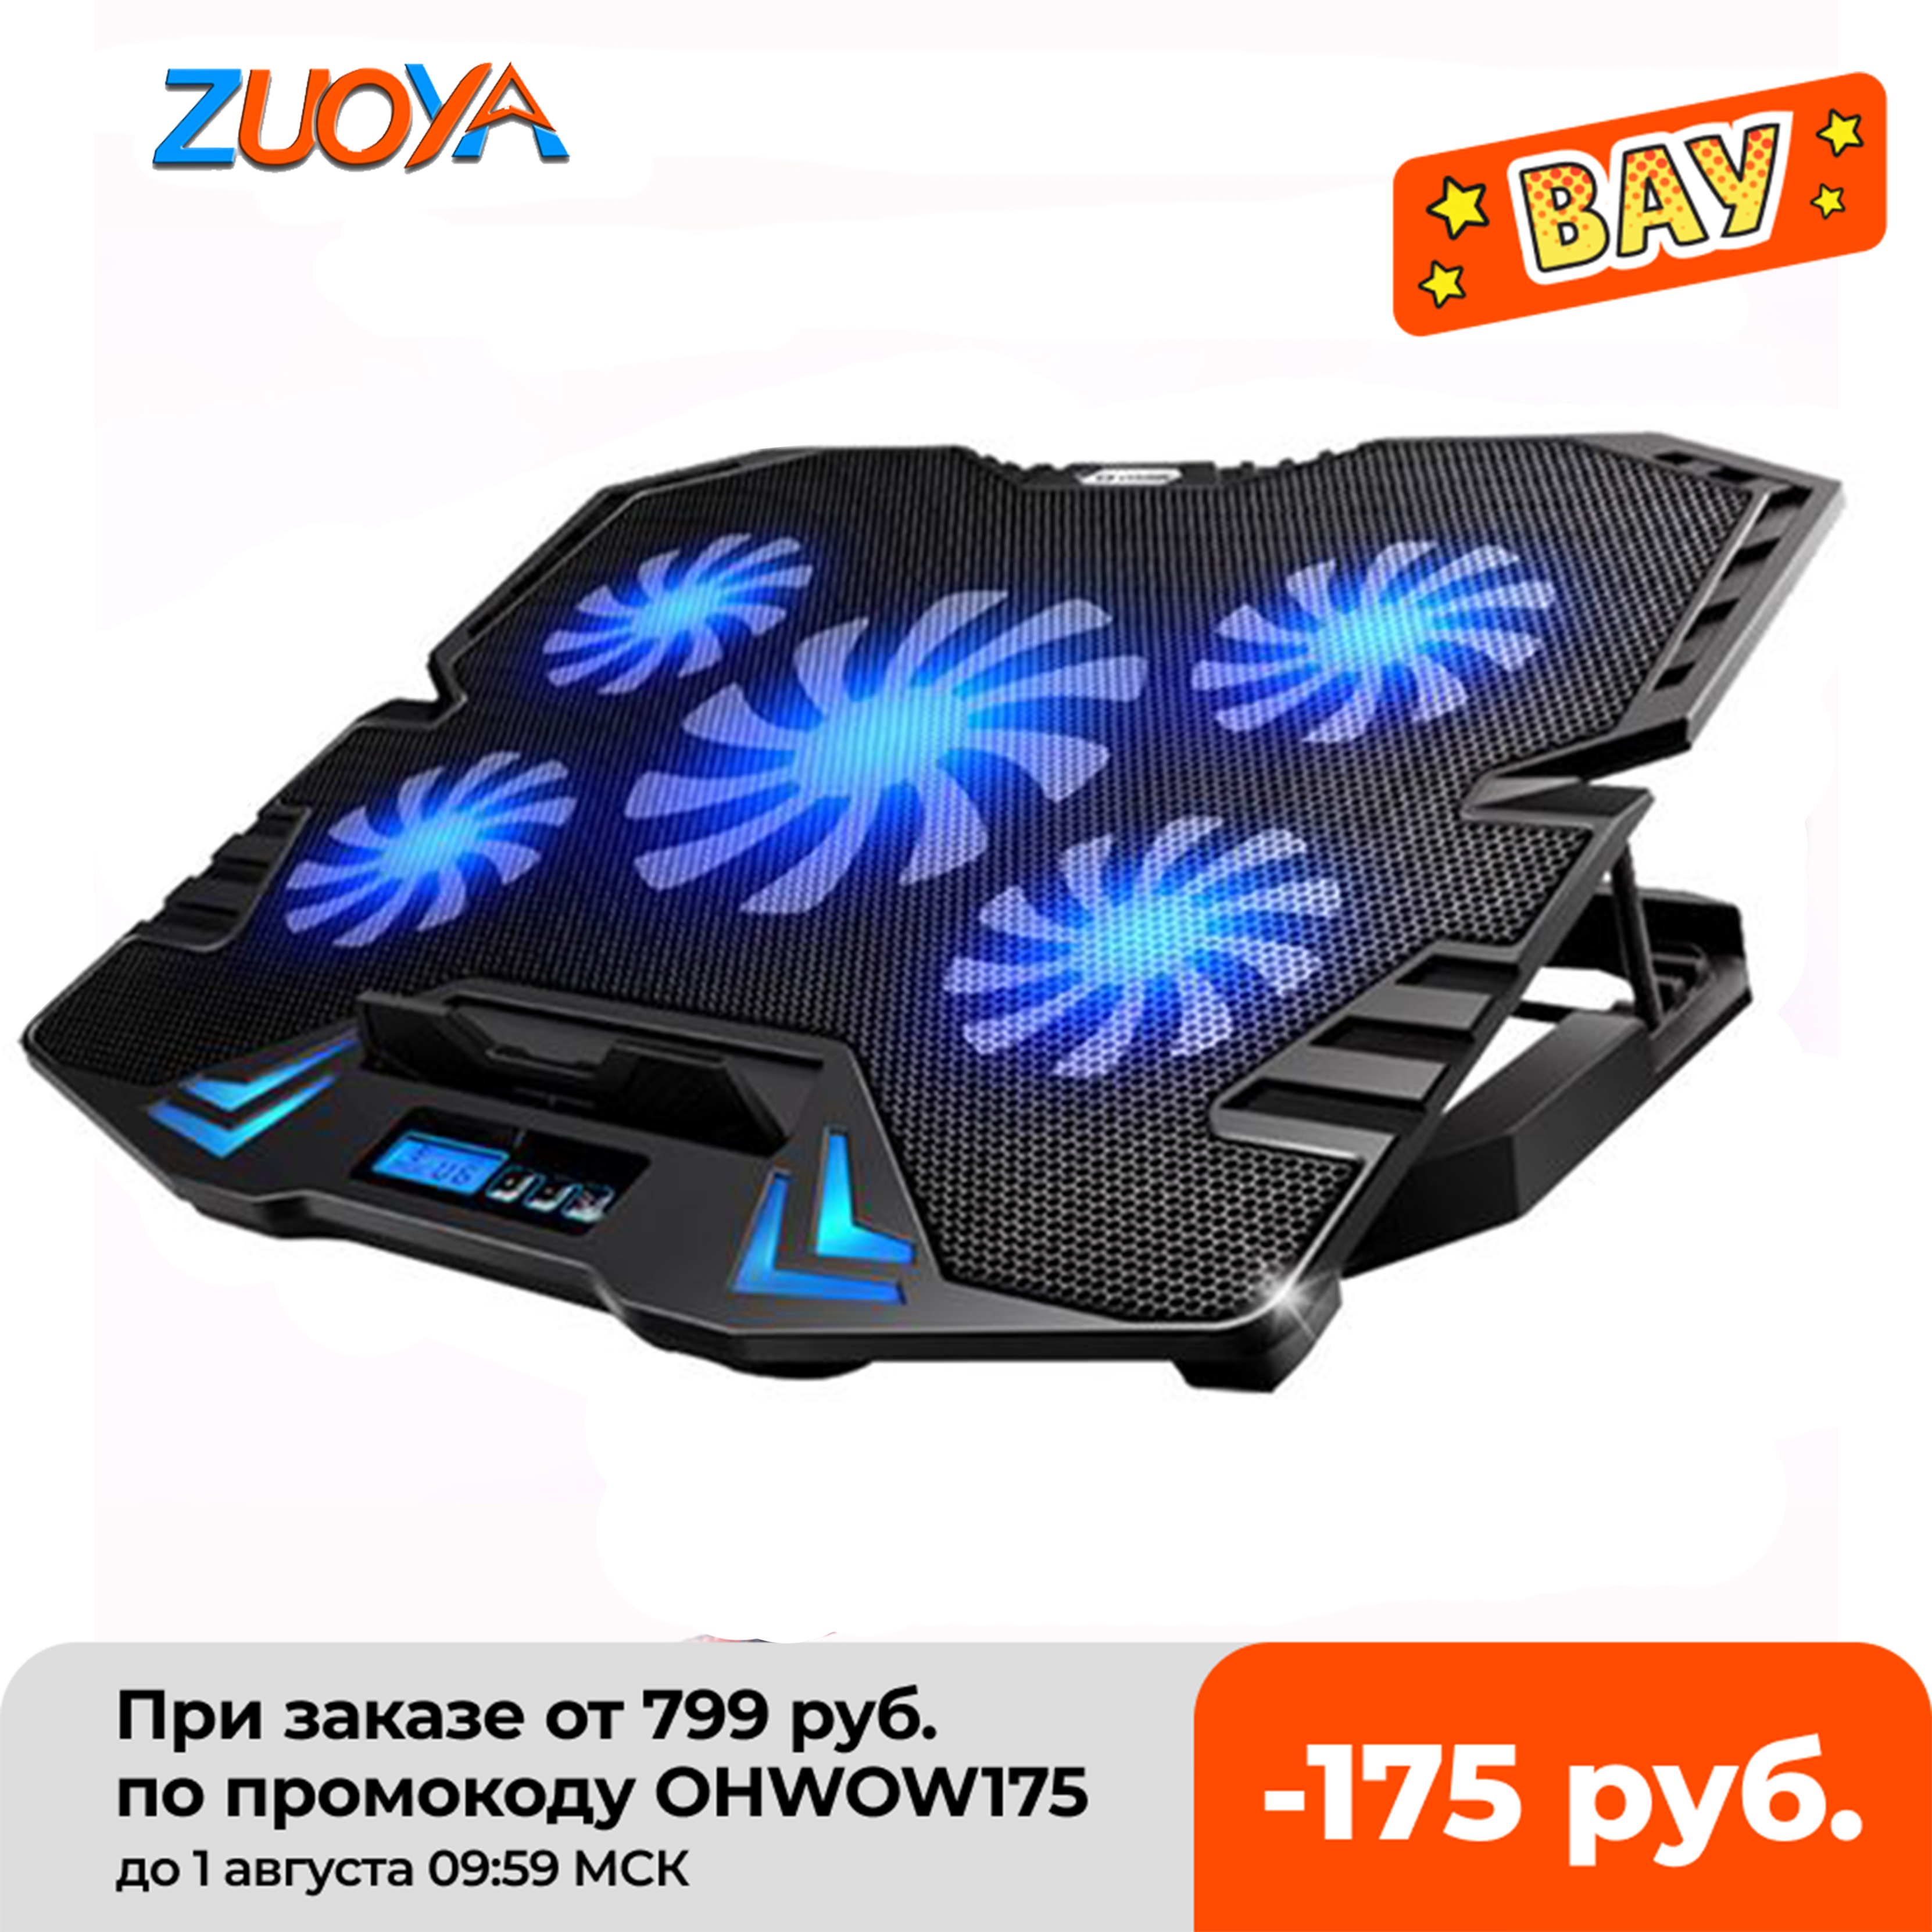 zuoya gaming laptop cooler 12-15.6 inch Led Screen Laptop cooling pad Notebook Stand 2 USB Ports